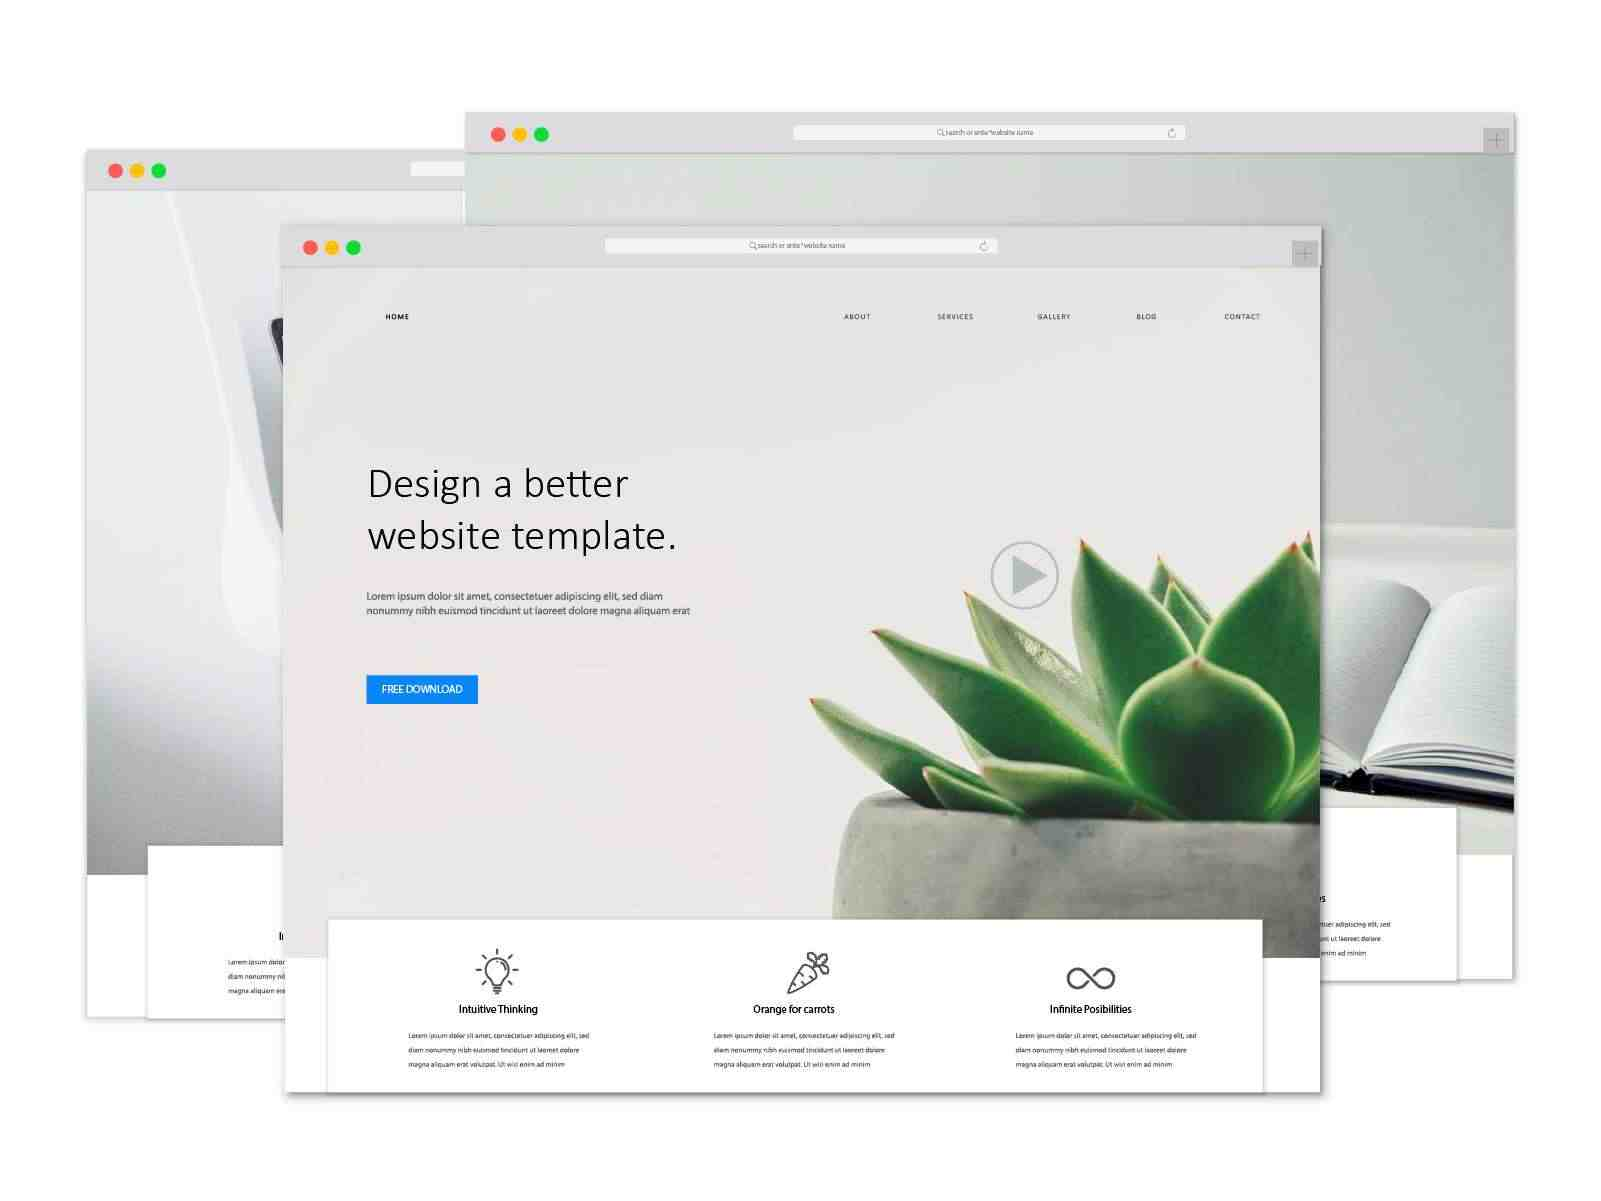 crate a website within a minute